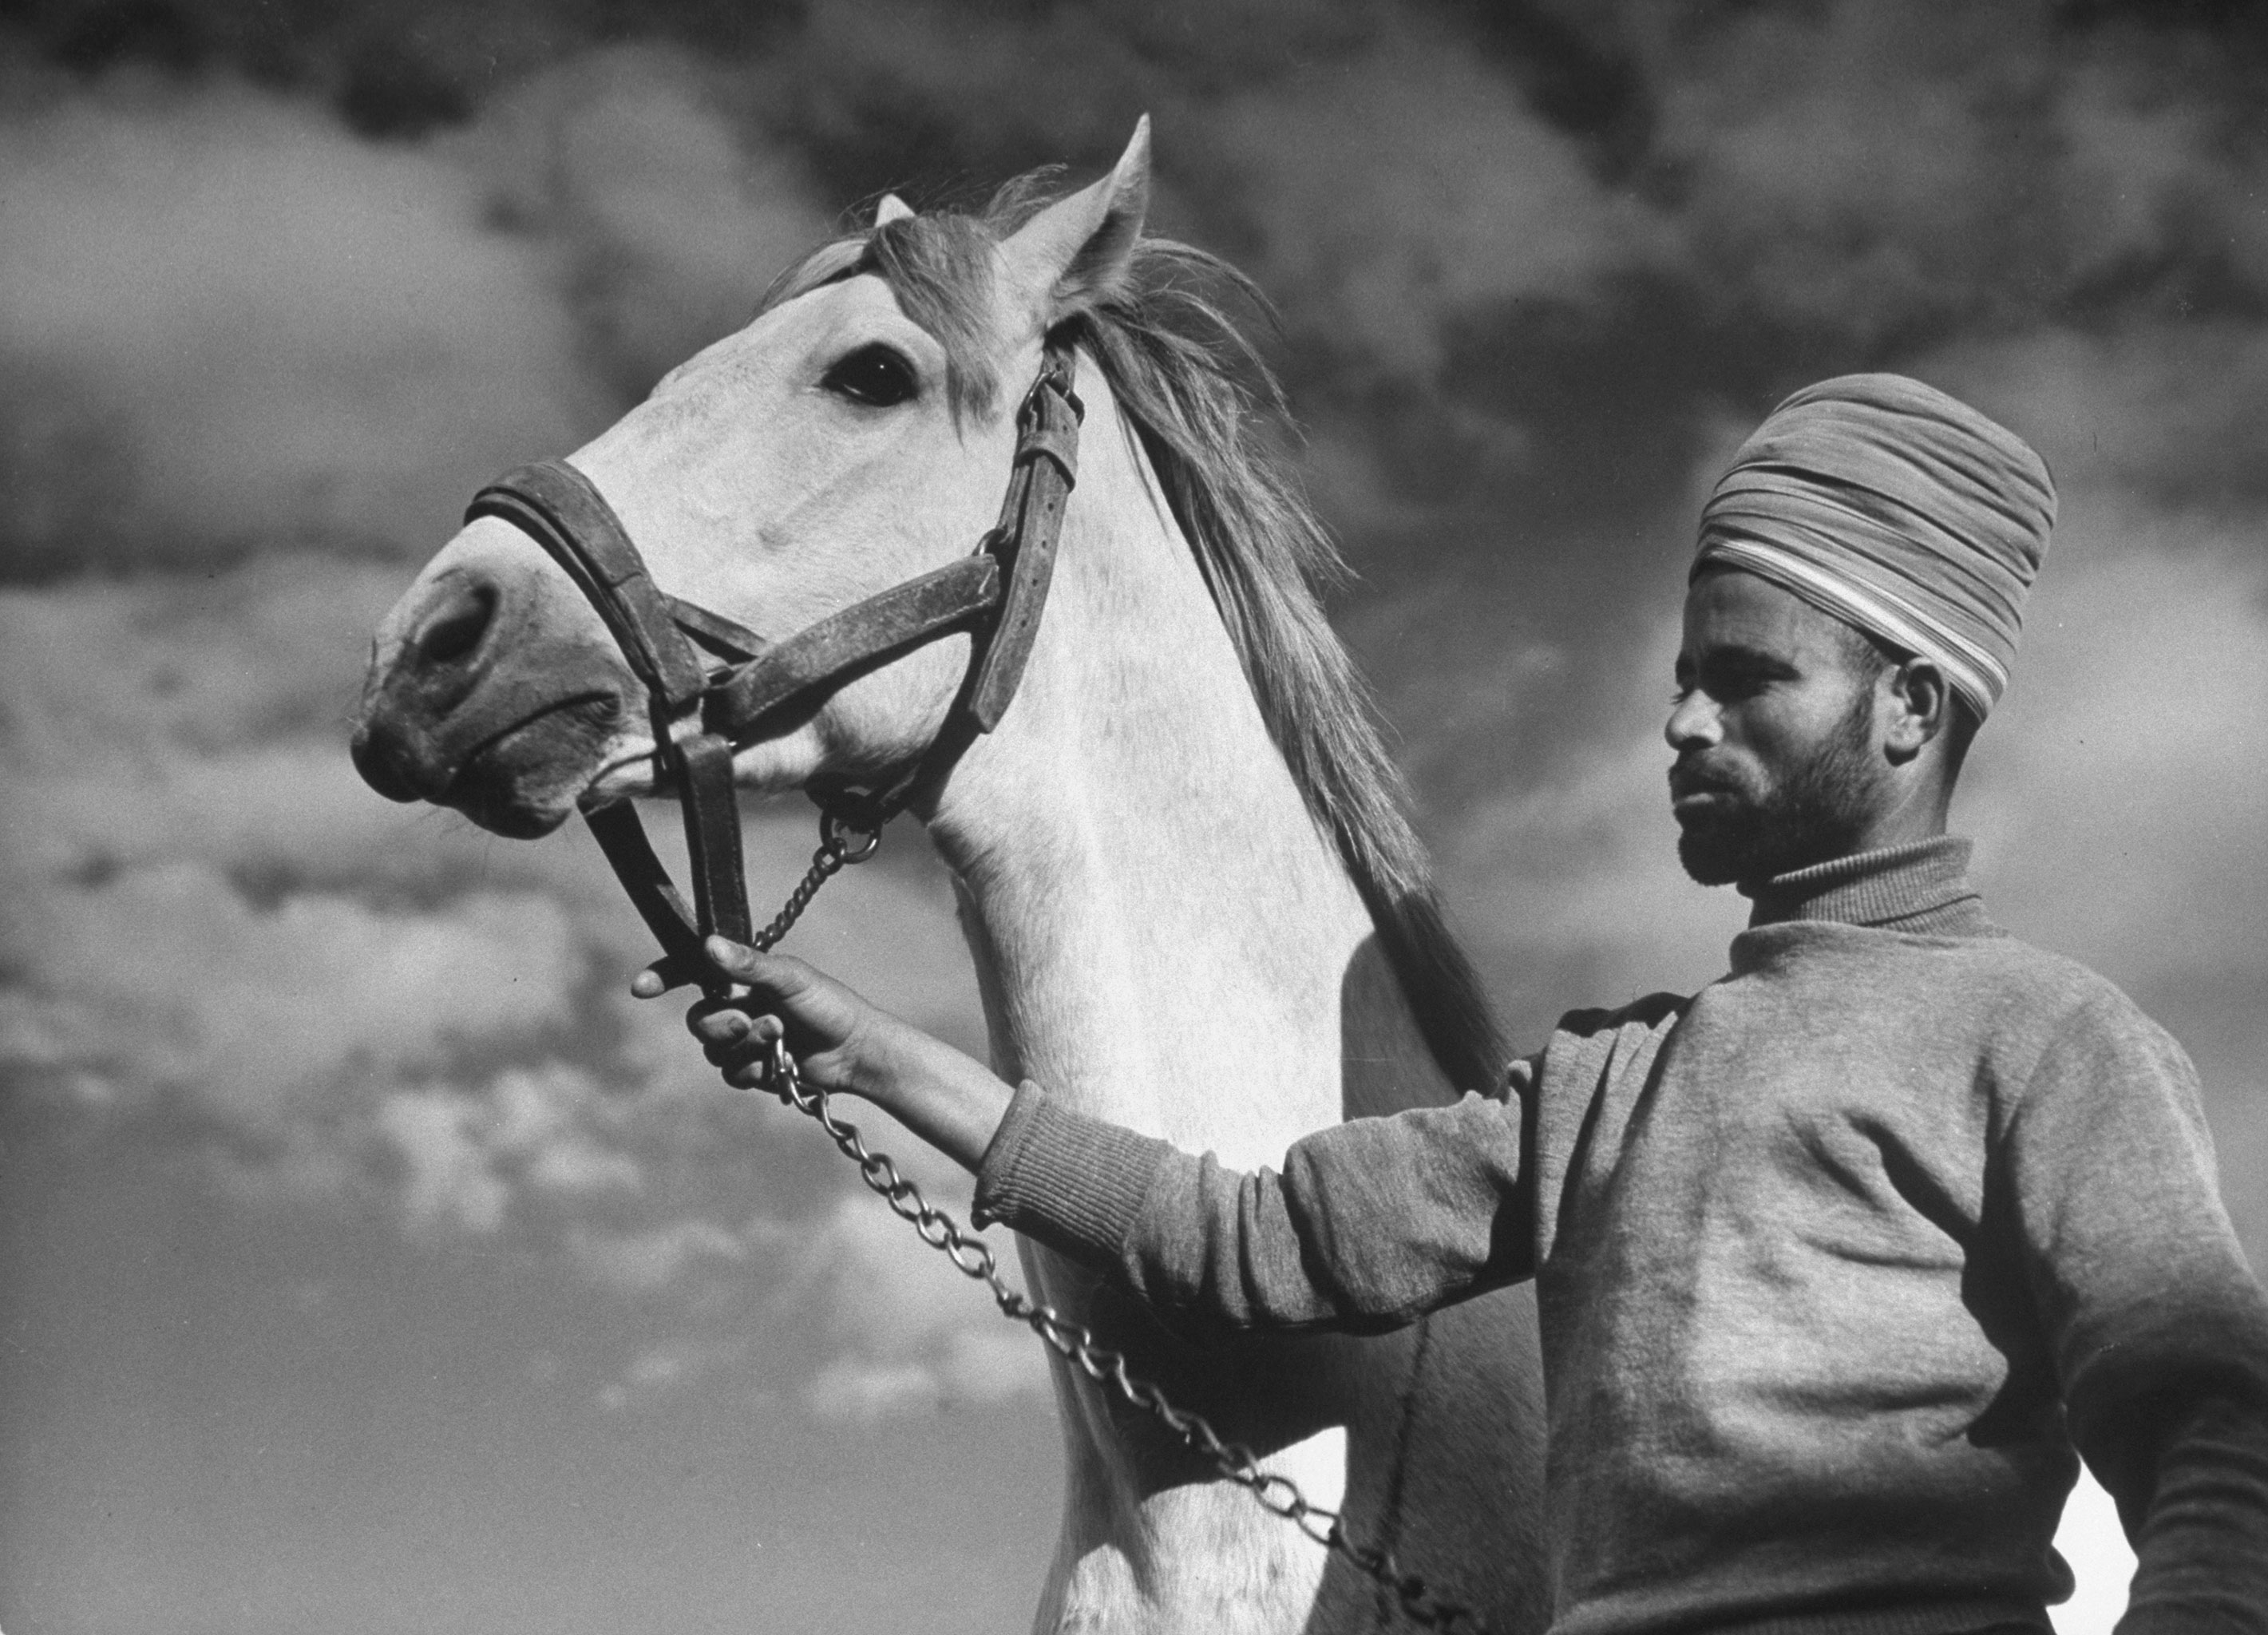 A Moroccan soldier of the French expeditionary force holds an officer's Arabian horse inside the great citadel at Aleppo, 1940.